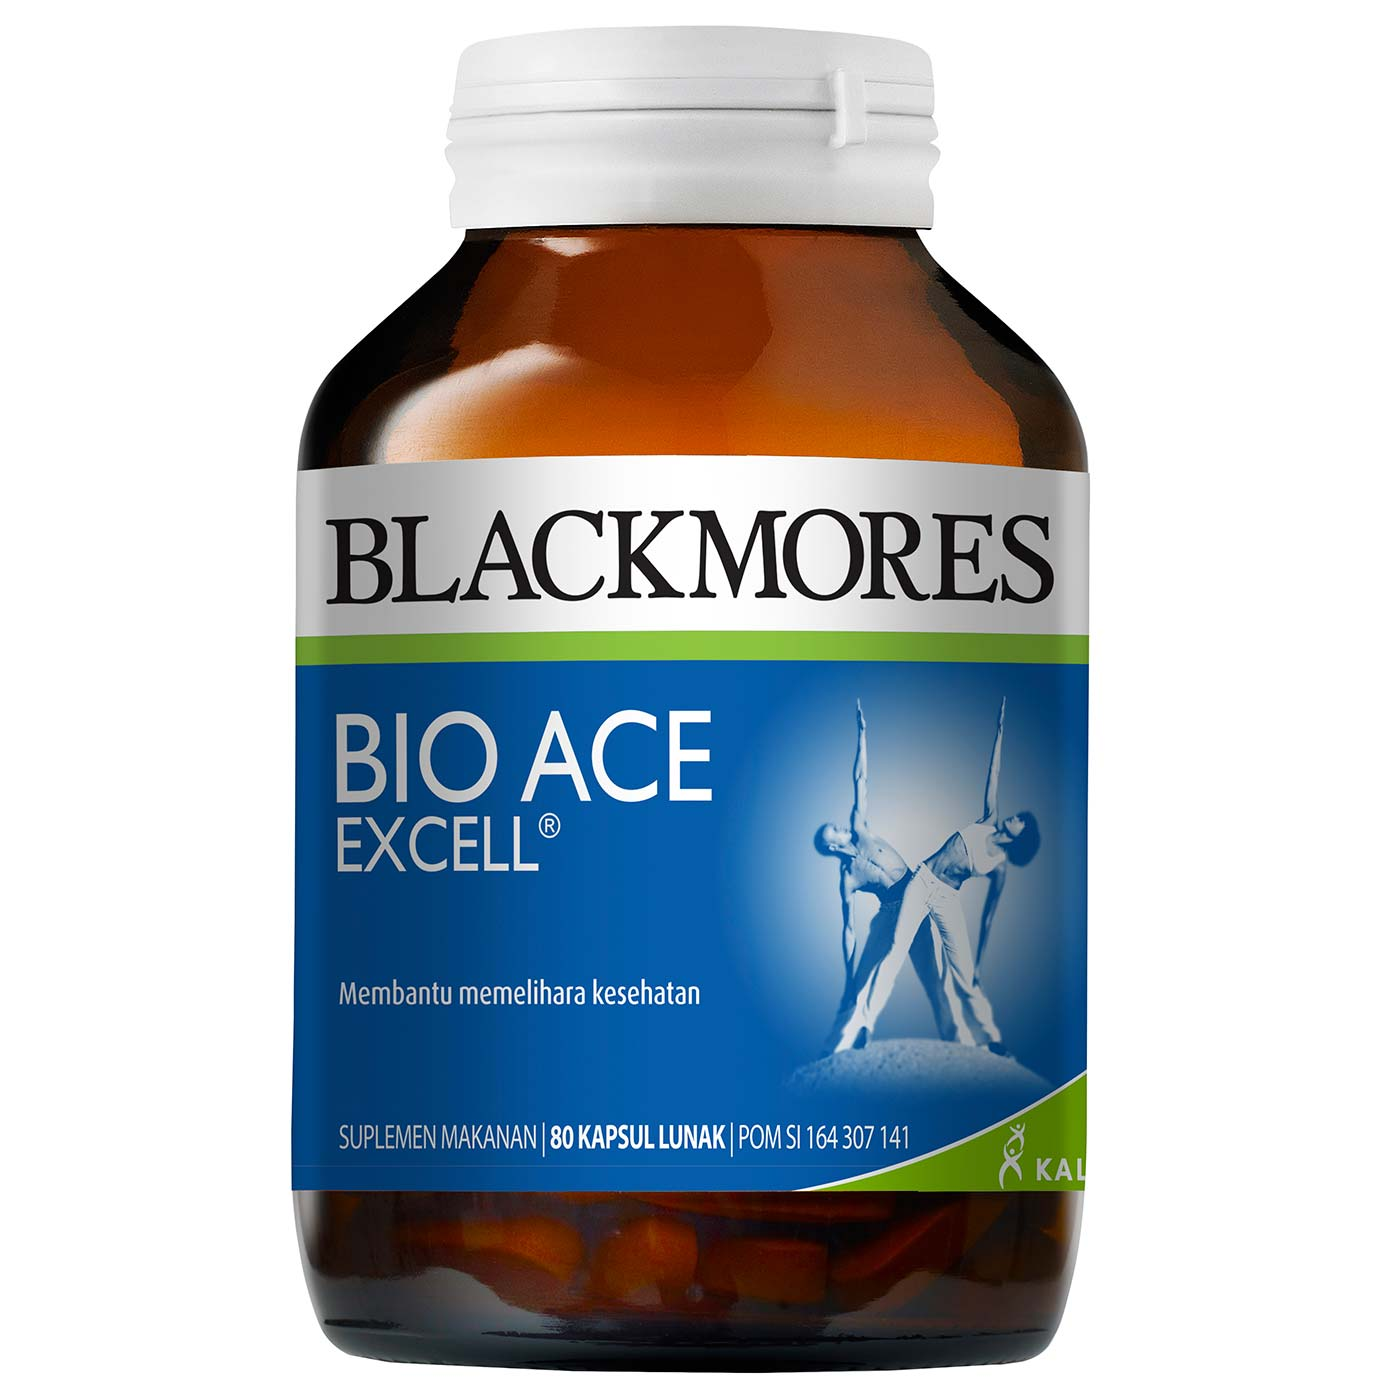 Blackmores Bio Ace Excell 80 Capsule 1